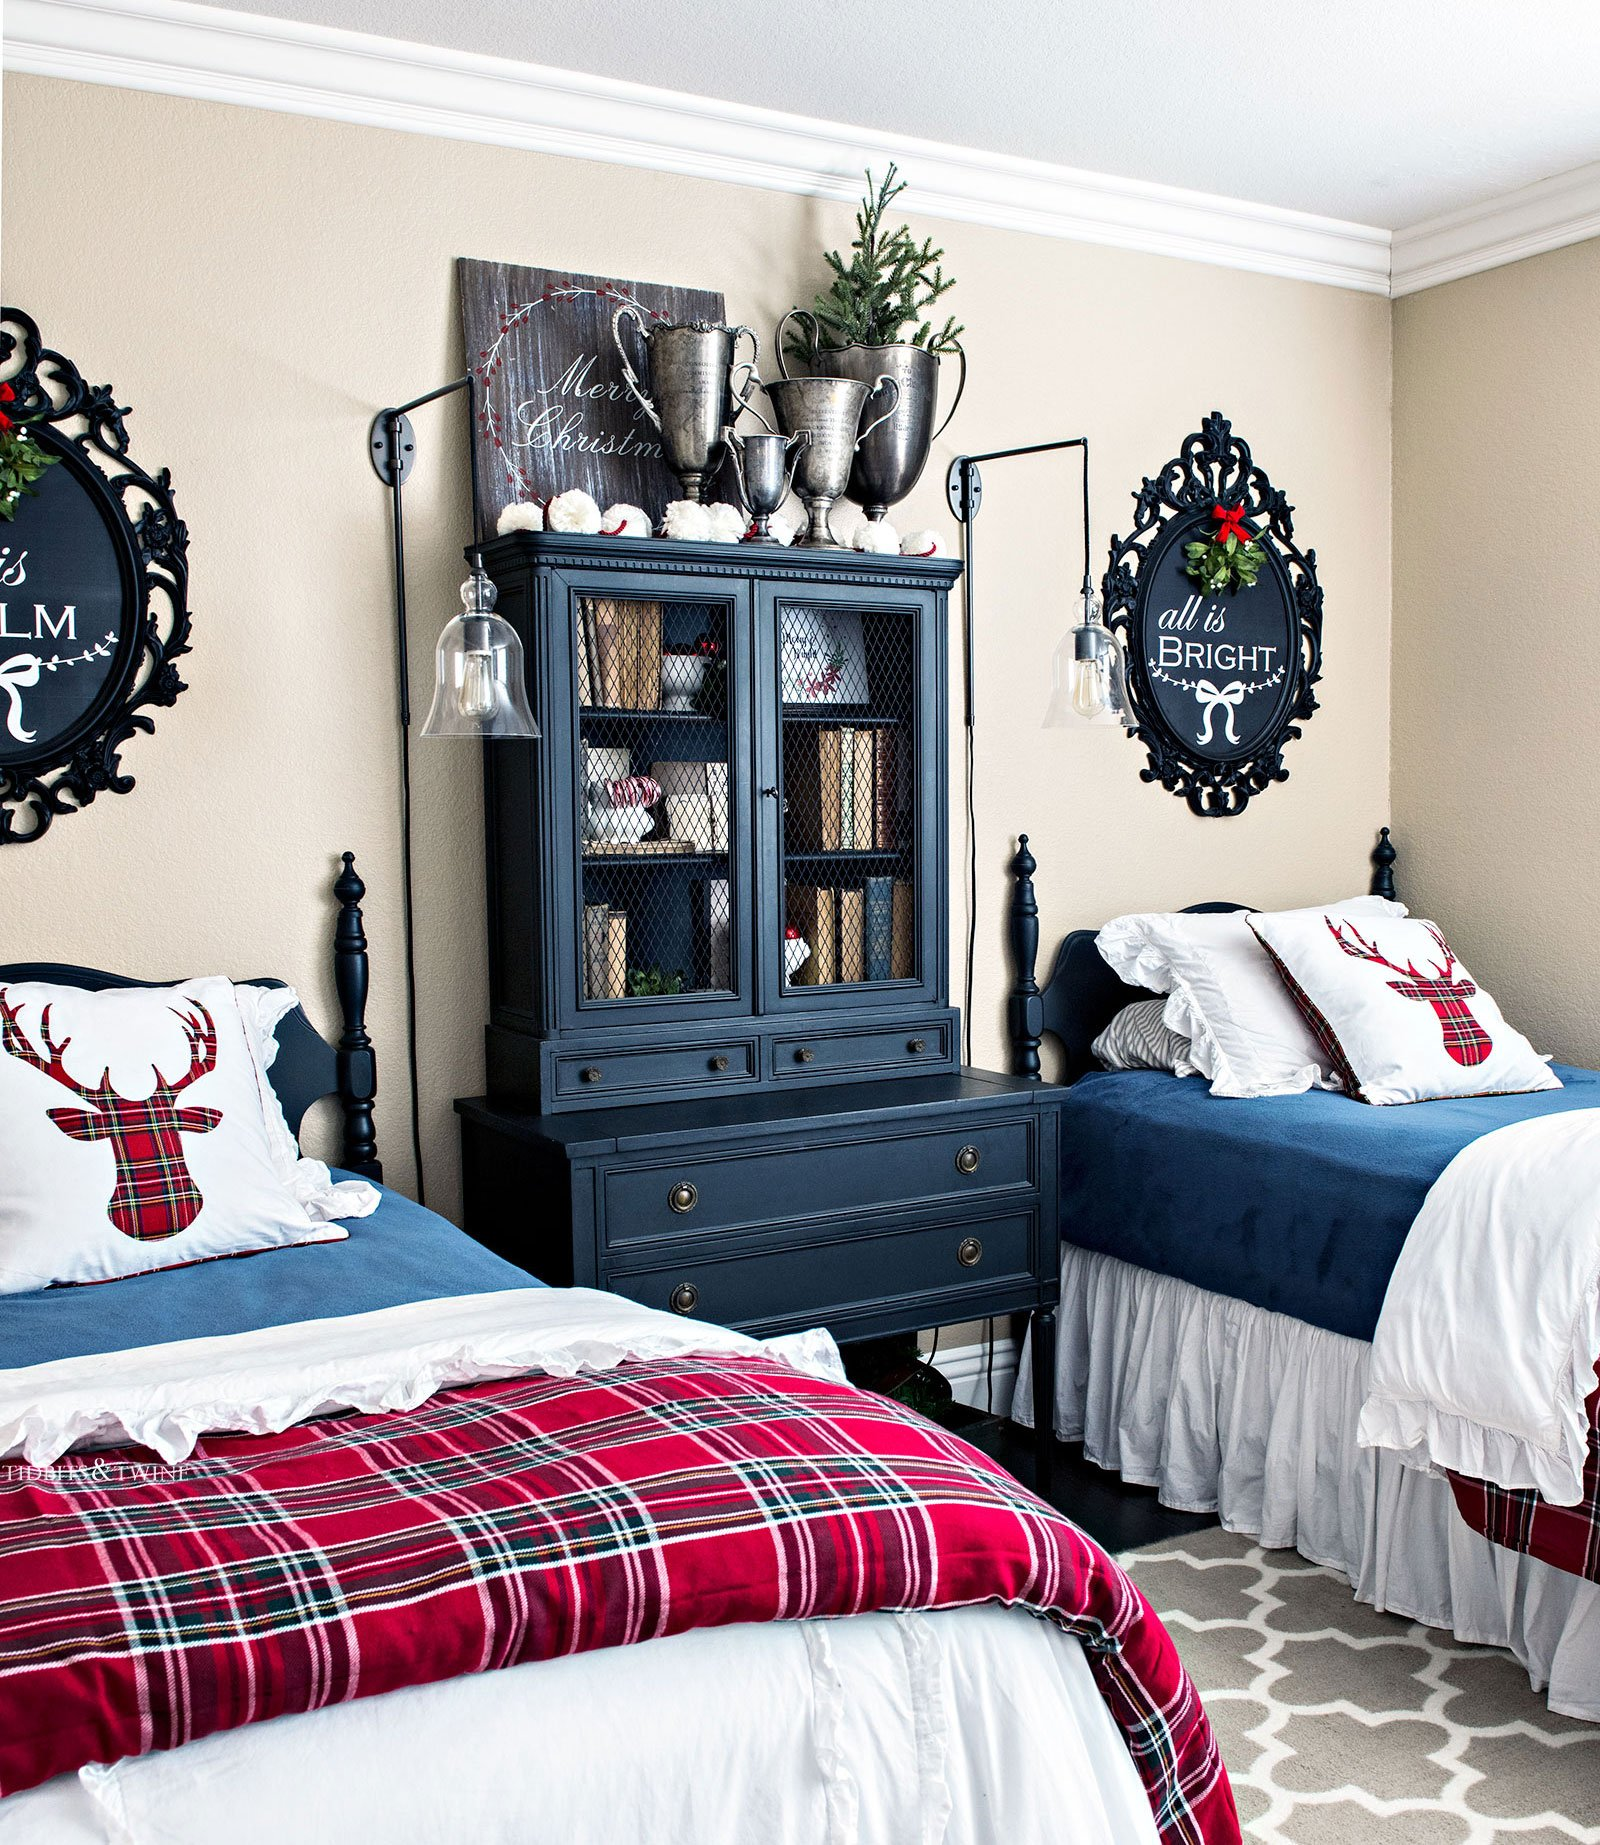 Christmas Bedroom Decor Red Plaid